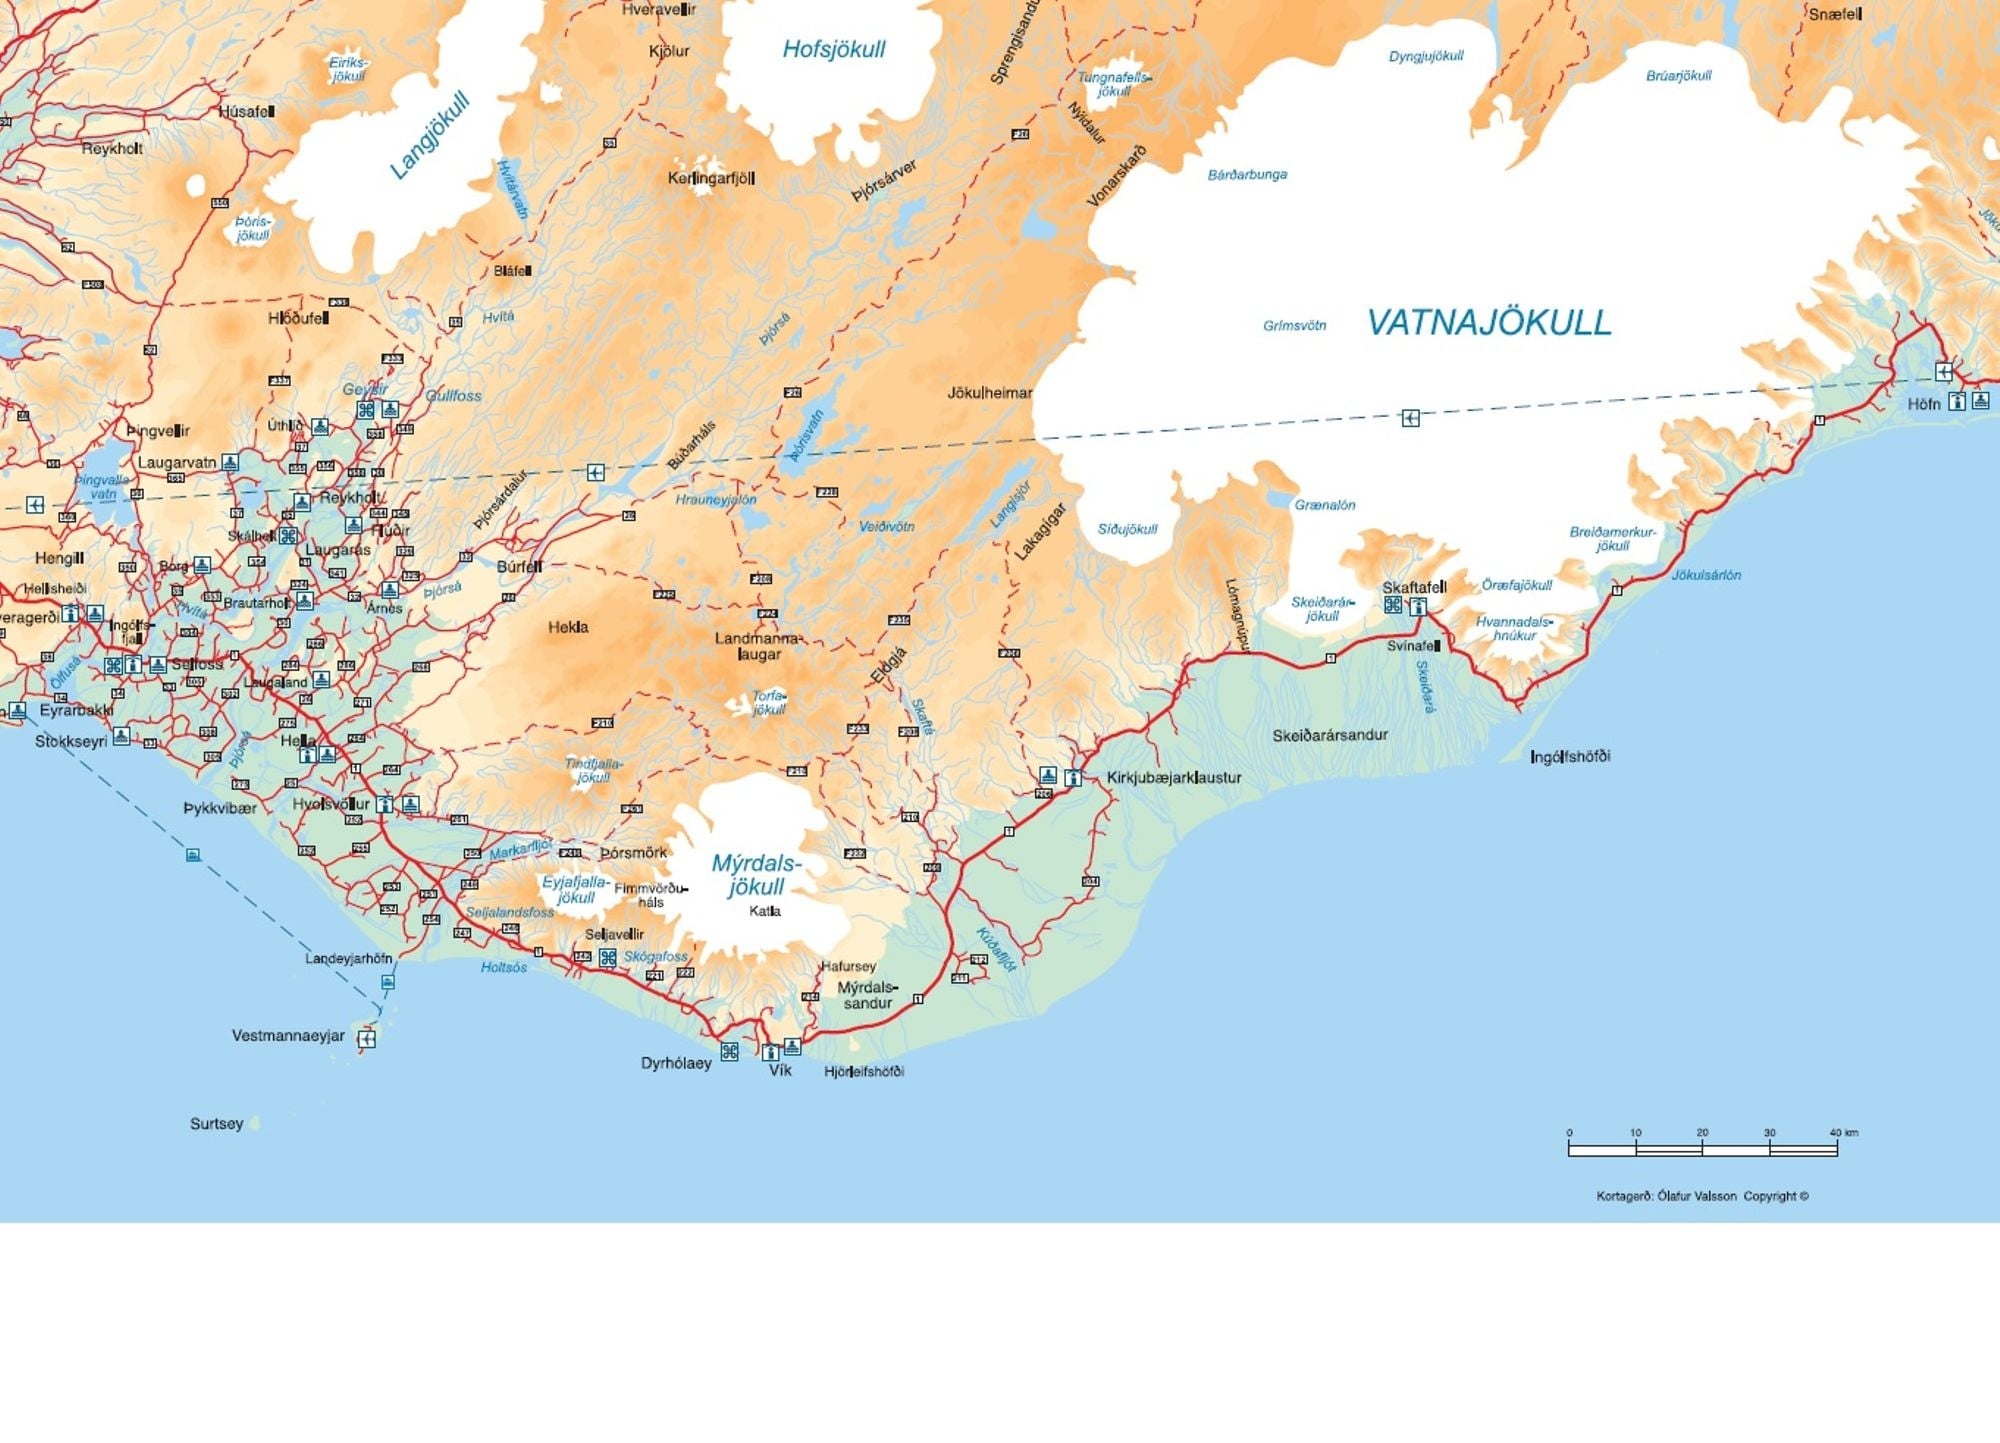 South Iceland – Iceland Tourist Attractions Map